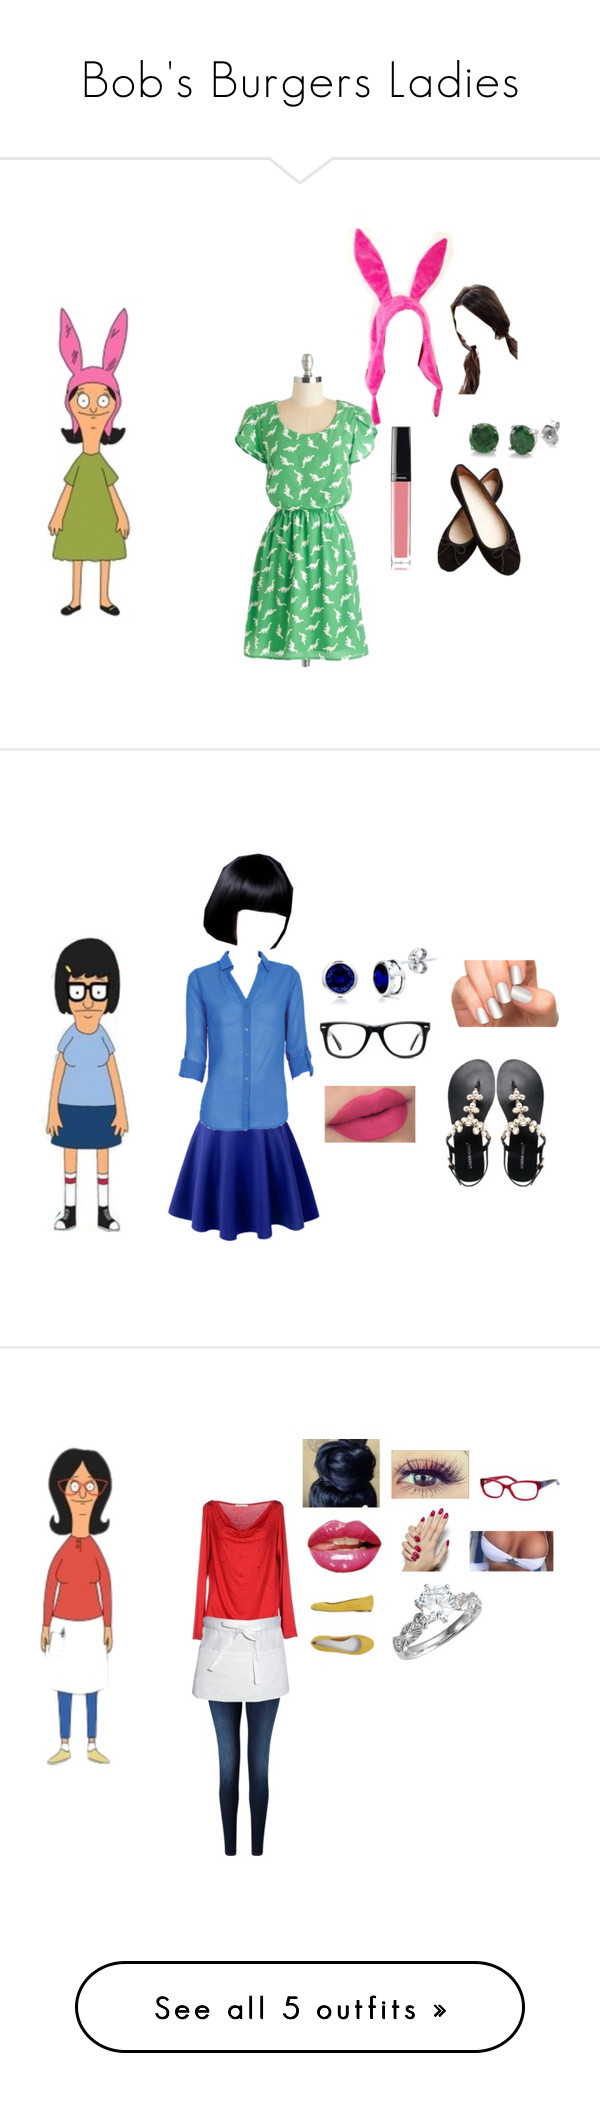 """Bob's Burgers Ladies"" by tinkerprincess26 on Polyvore featuring Gosh, Chanel, BERRICLE, Bobsbugers, LE3NO, Muse, Incoco, London Rebel, MakeOver and 7 For All Mankind"